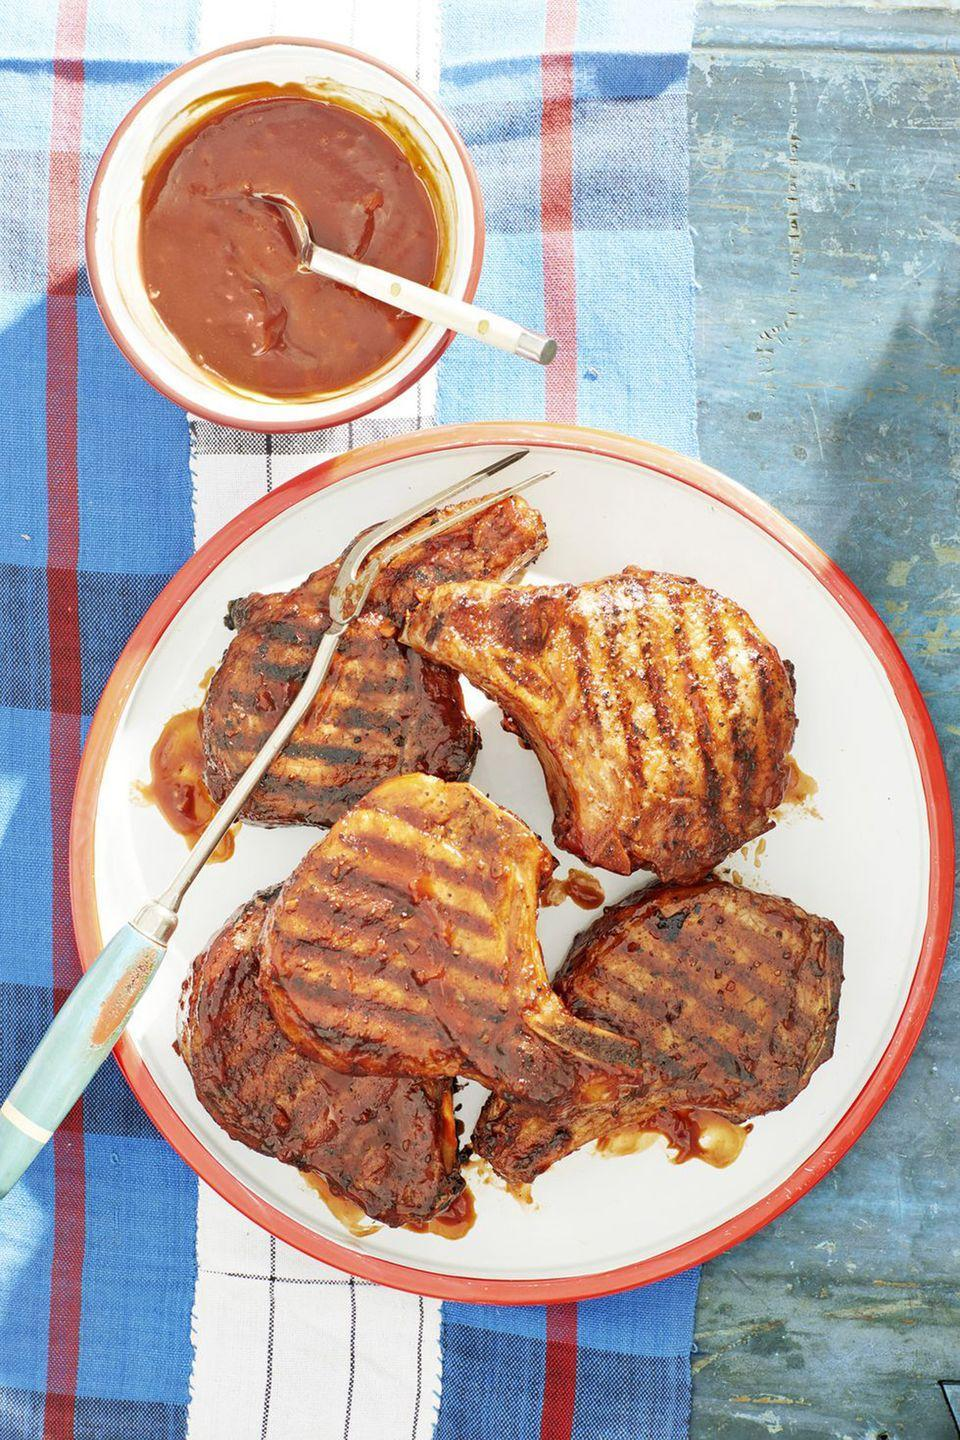 """<p>Whiskey drinkers will especially love this homemade barbecue sauce. It makes every type of grilled meat even more mouthwatering.<br></p><p><strong><a href=""""https://www.countryliving.com/food-drinks/a21347095/bourbon-bbq-glazed-pork-chops-recipe/"""" rel=""""nofollow noopener"""" target=""""_blank"""" data-ylk=""""slk:Get the recipe"""" class=""""link rapid-noclick-resp"""">Get the recipe</a></strong><strong>.</strong></p>"""